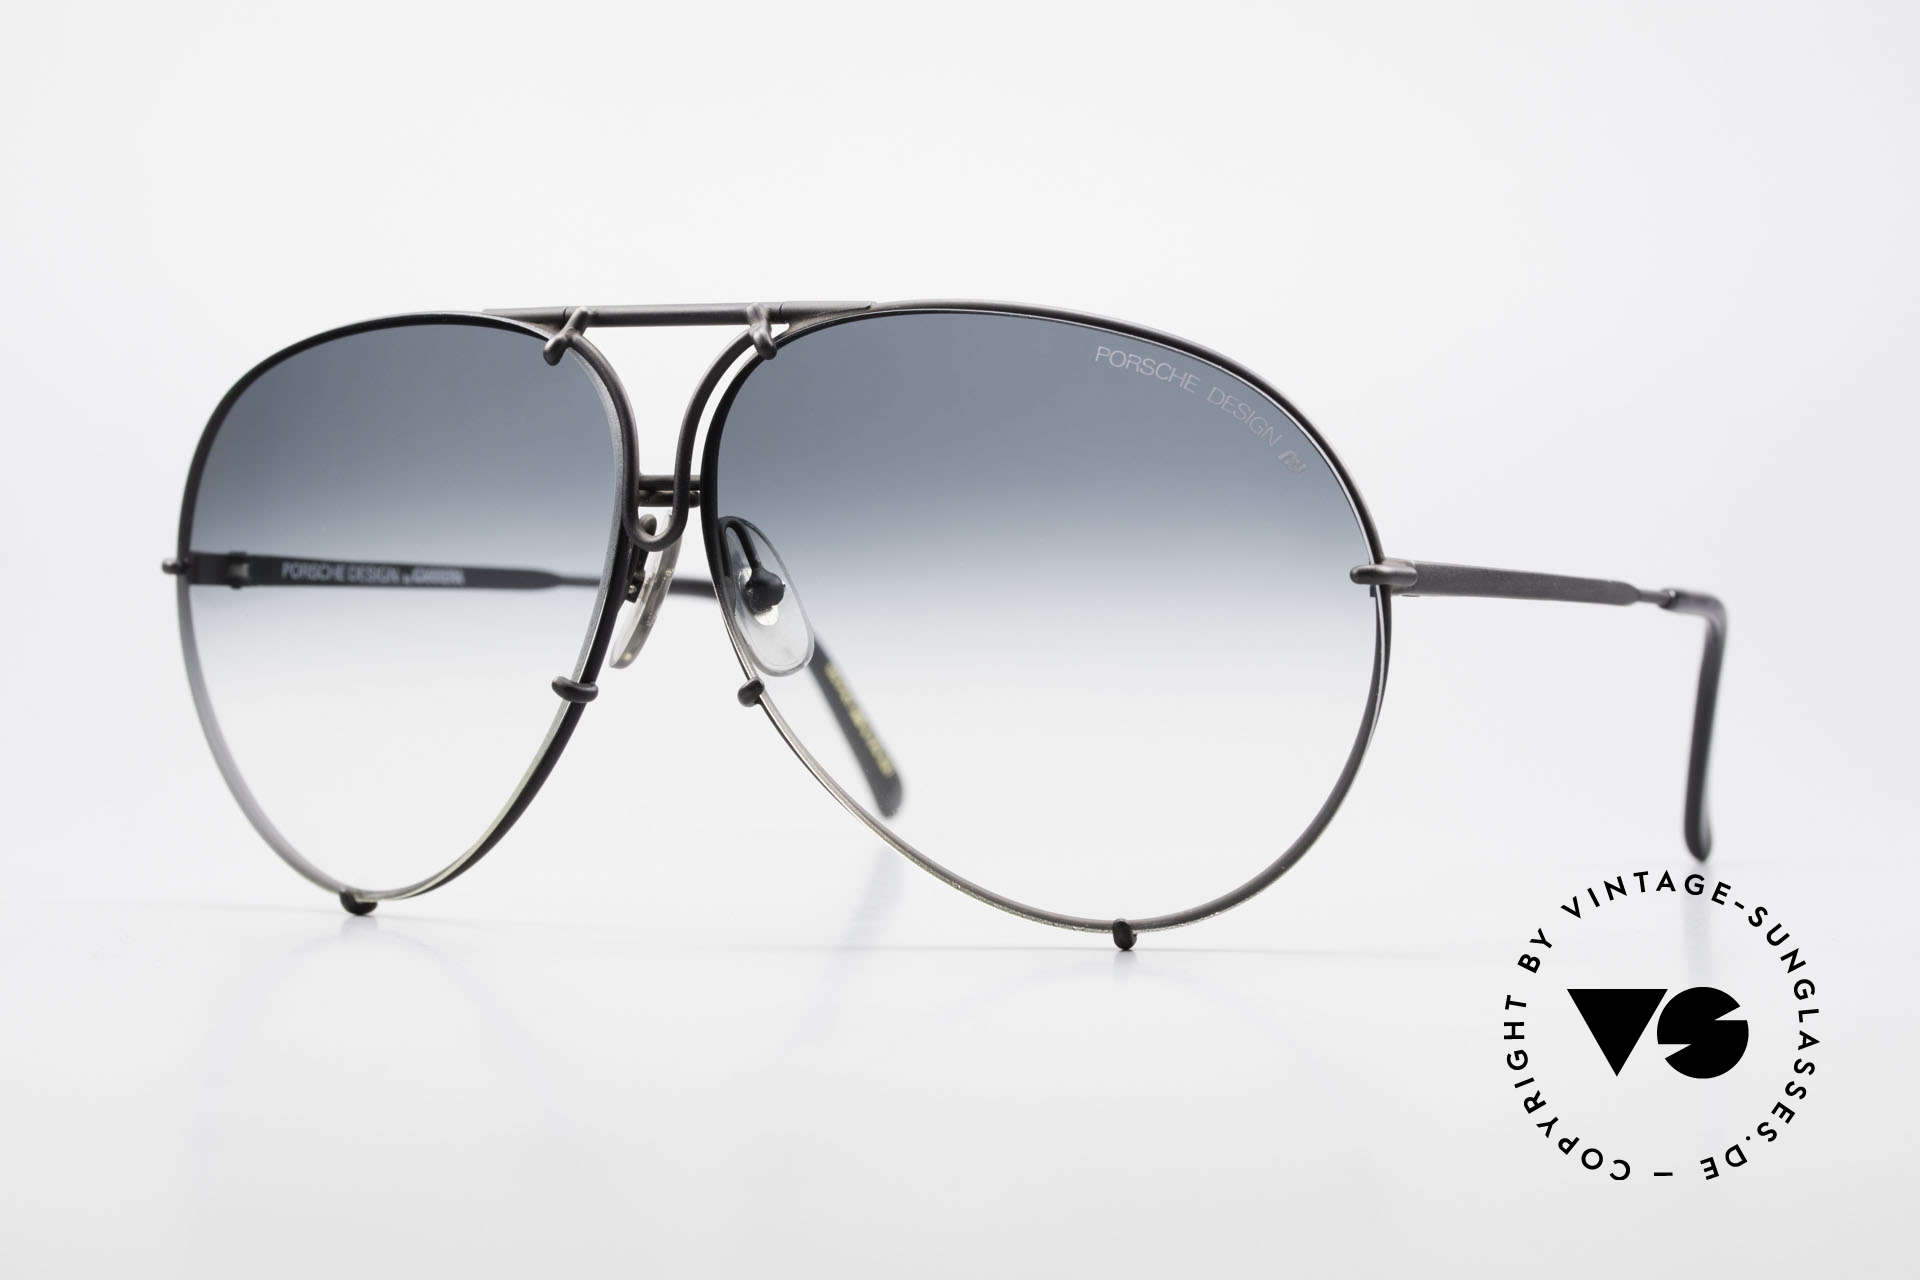 Porsche 5621 Rare 80's Aviator Sunglasses, old Porsche Design sunglasses with changeable lens, Made for Men